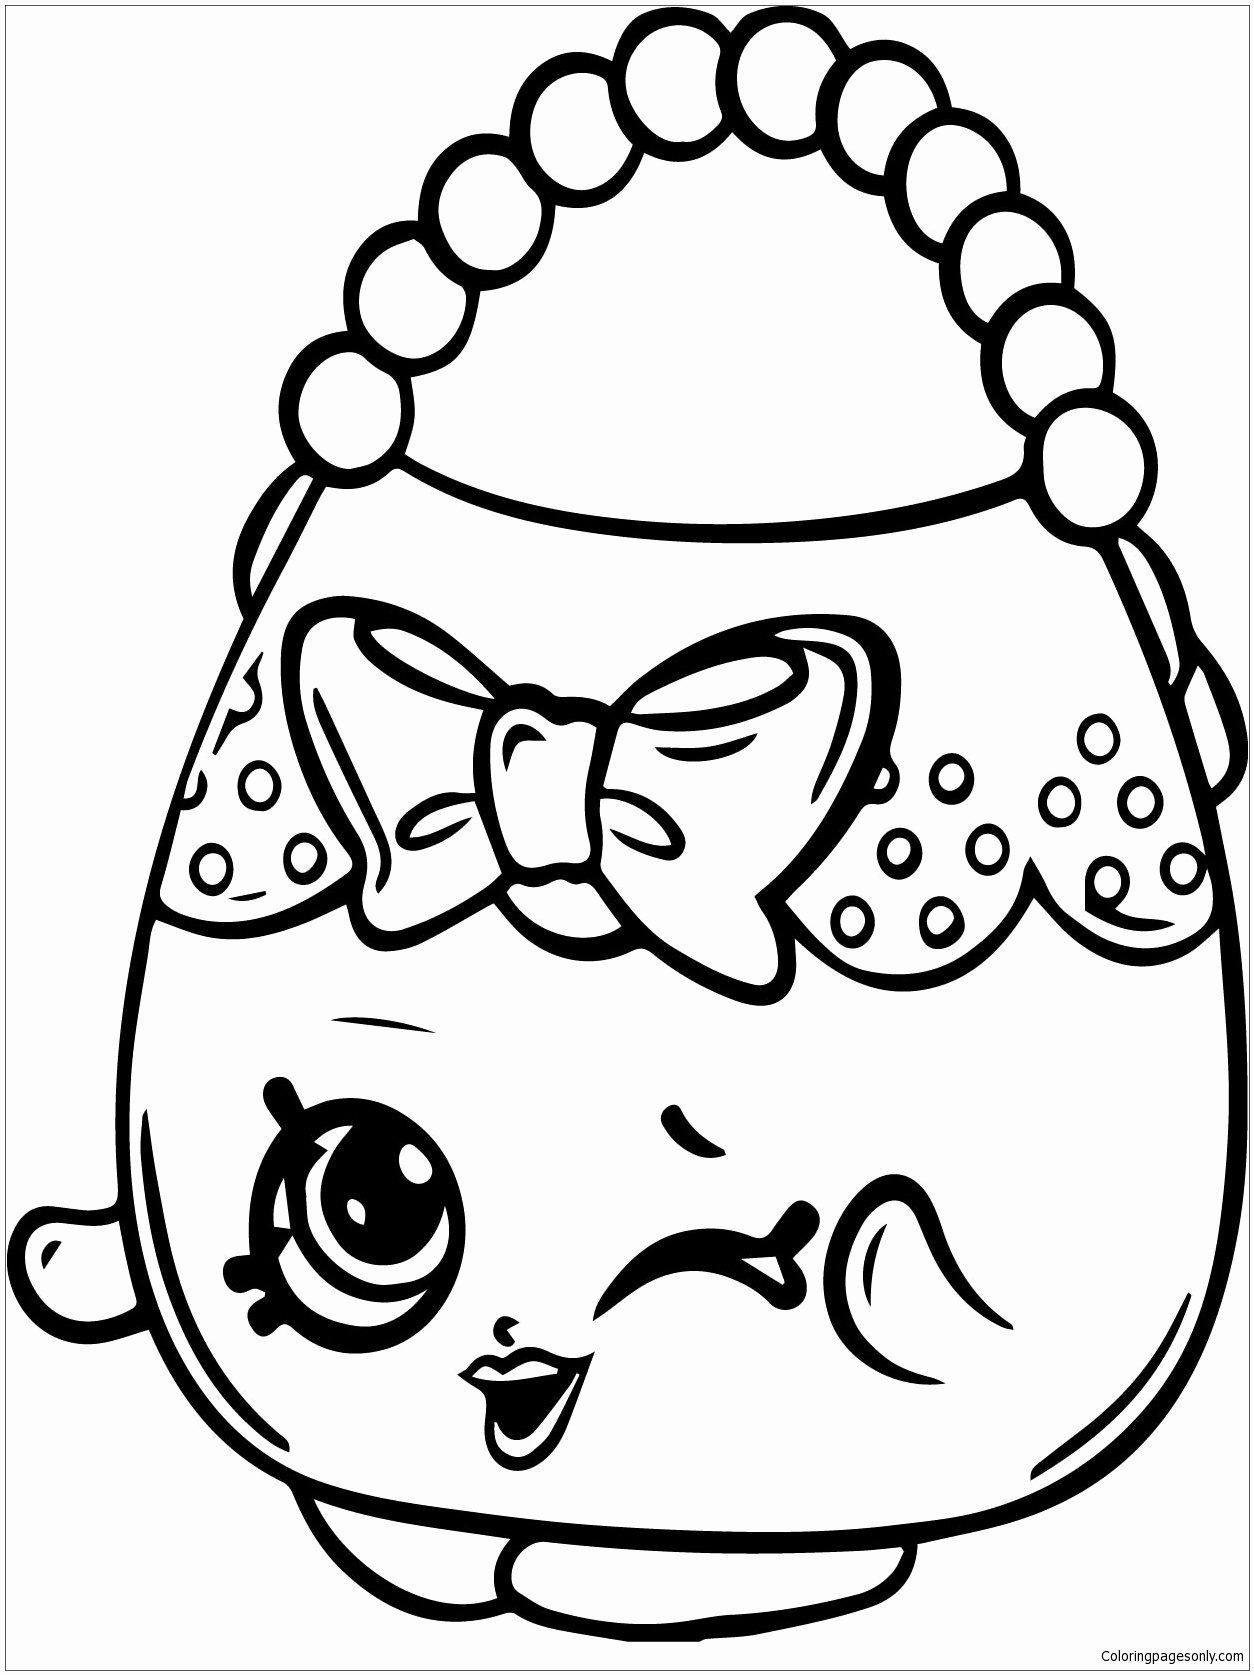 Free Printable Shopkins Coloring Sheets Beautiful Purse Coloring